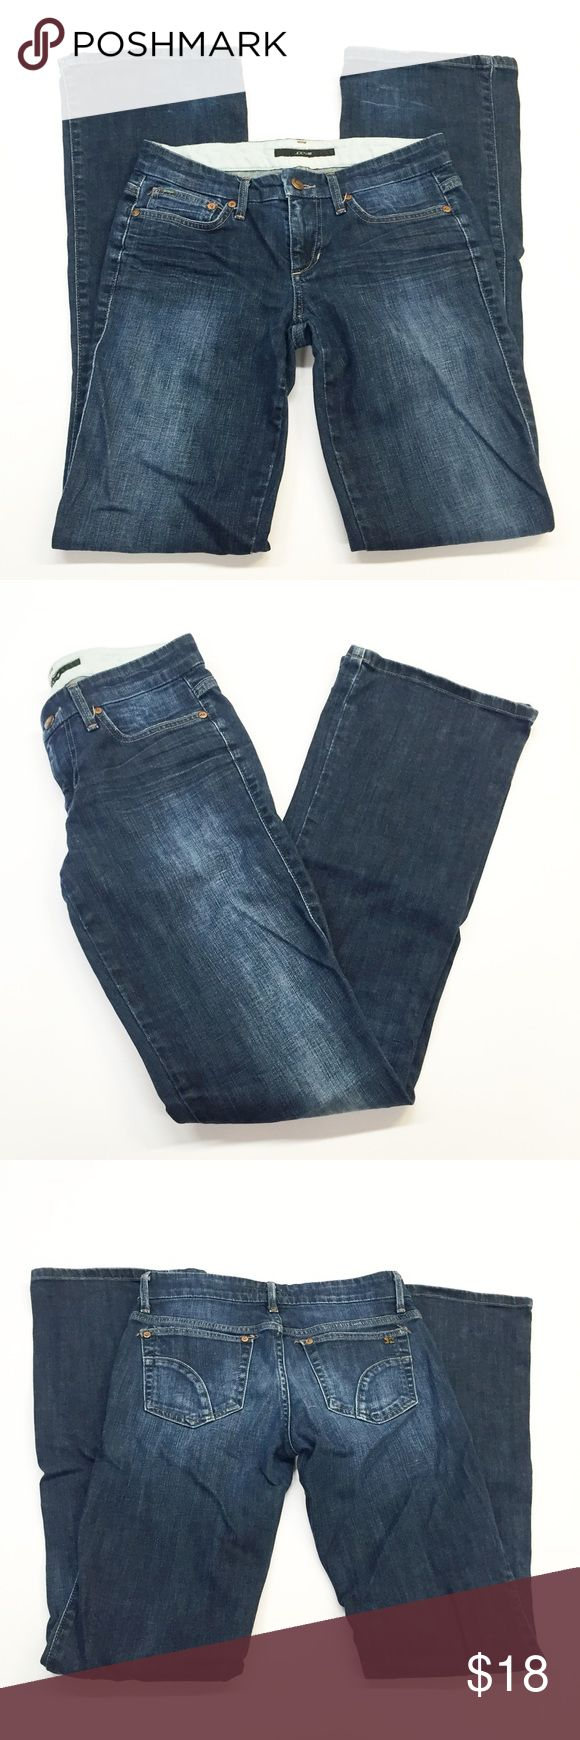 """Joe's Jeans Rocker Boot Leg Jeans Super cute bootcut jeans from Joe's Jeans! Rocker jeans in Thompson wash. Wear on the hemline is shown in photos number 5 through 7. Smoke and pet free home. Measurements taken laid flat. 15"""" waist. 17.5"""" hips. 10"""" thighs. 9"""" leg opening. 33.5"""" inseam. 7.5"""" rise. Joe's Jeans Jeans Boot Cut"""